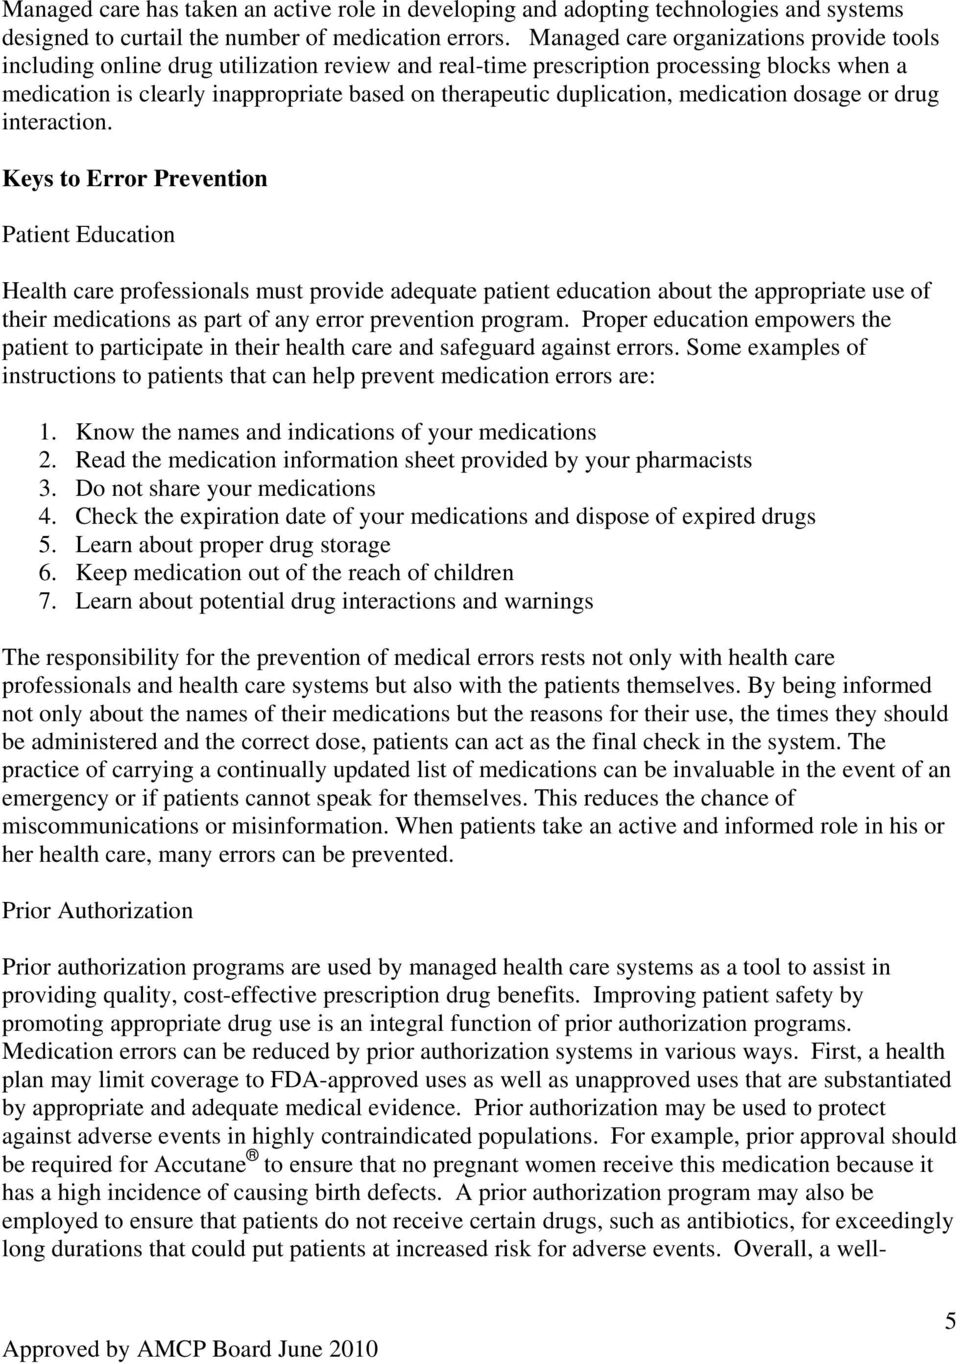 The Academy of Managed Care Pharmacy s Concepts in Managed